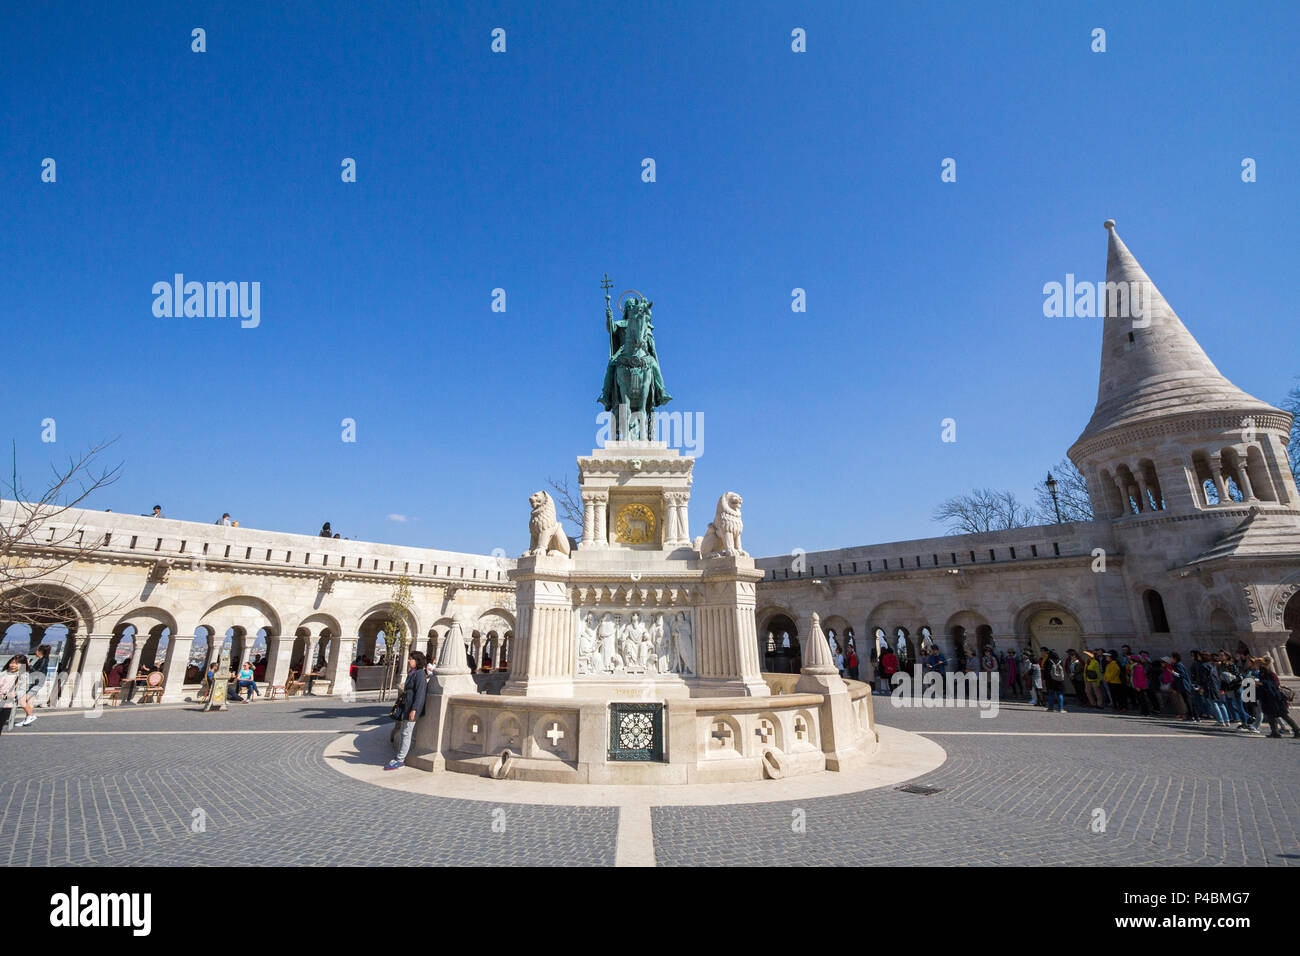 BUDAPEST, HUNGARY - APRIL 8, 2017: Stephan I statue (Szent Istvan) on Fisherman's Bastion (Halaszbastya) in Budapest castle during the afternoon. This - Stock Image